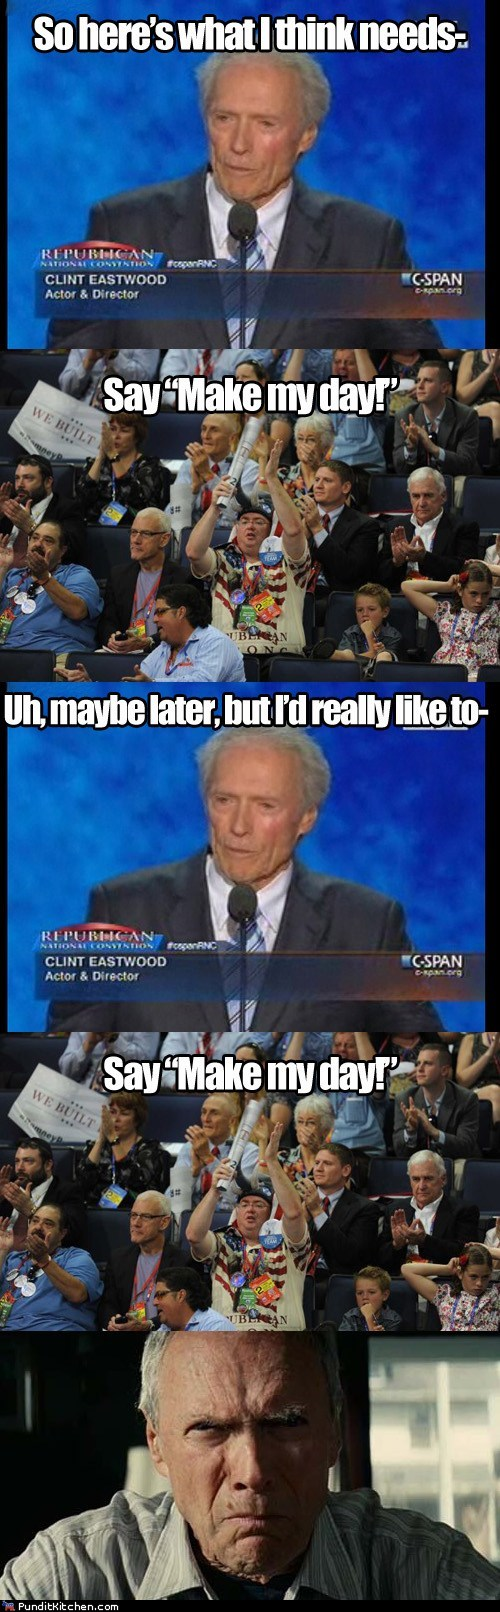 Clint Eastwood,dirty harry,interrupt,make my day,rnc